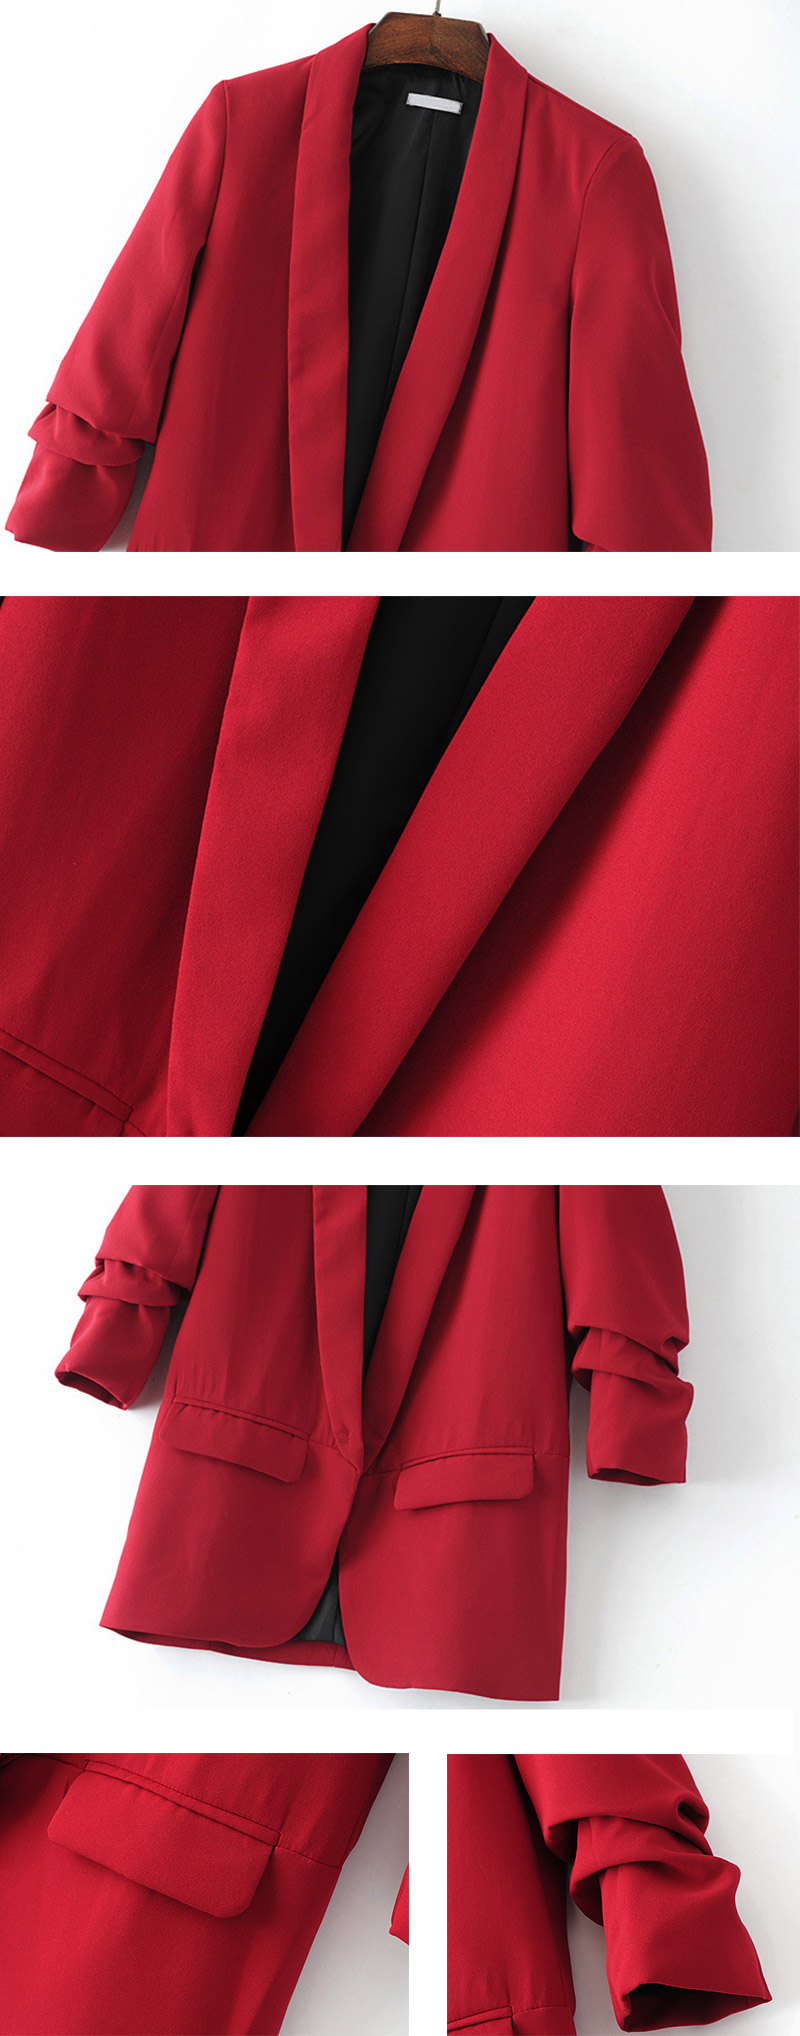 Elegant Red Puff Three Quarter Sleeve Blazer